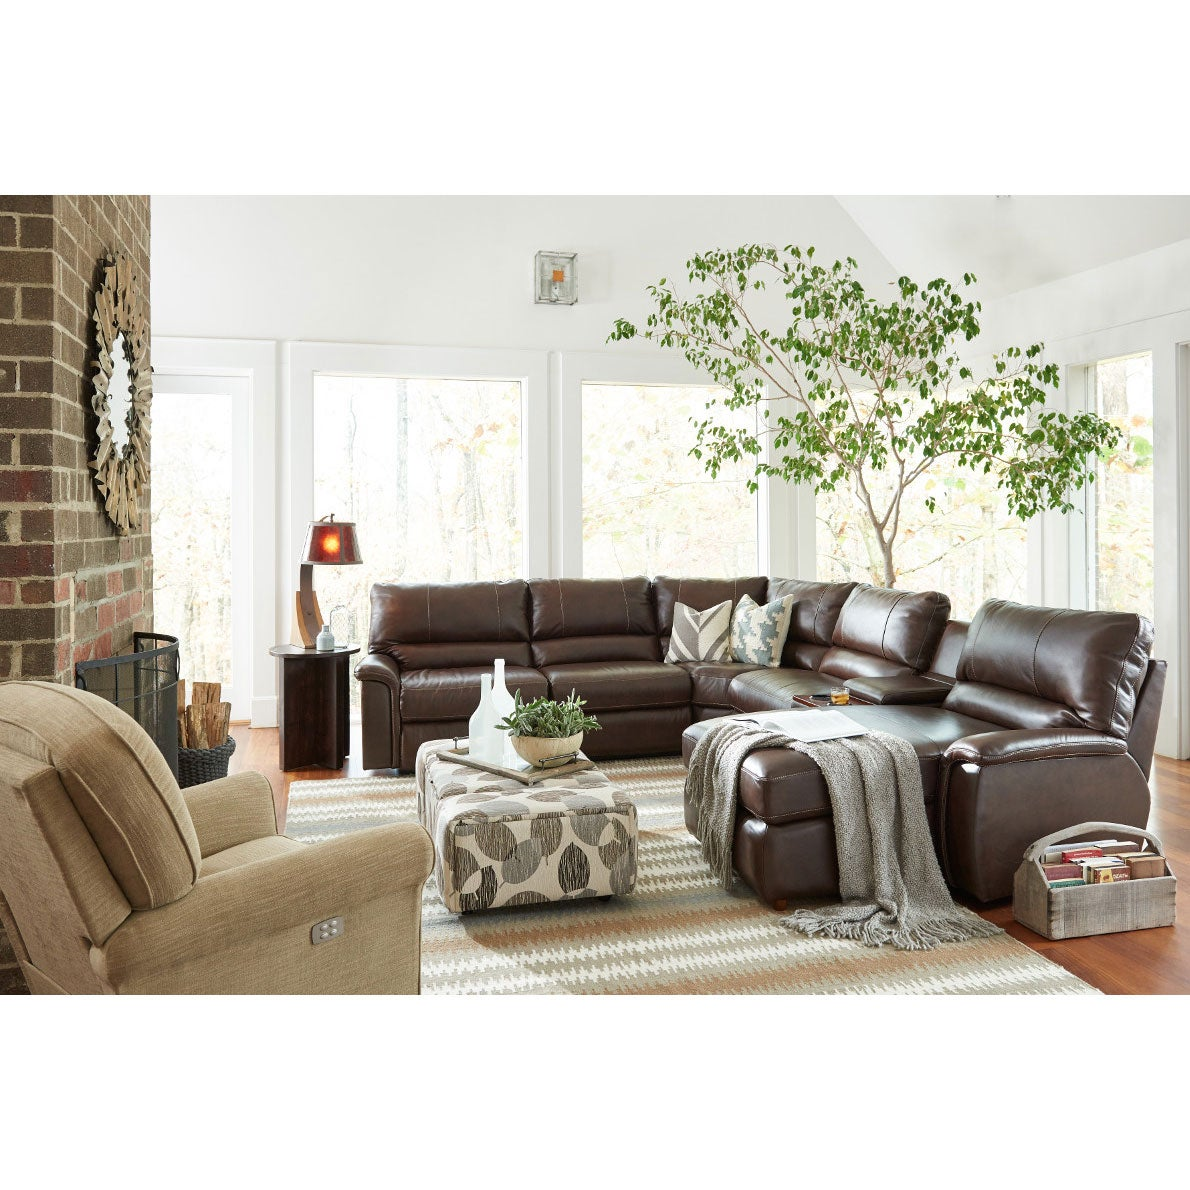 now lazy sectionals pin homefurniturein available dawson la in z sectional store boy